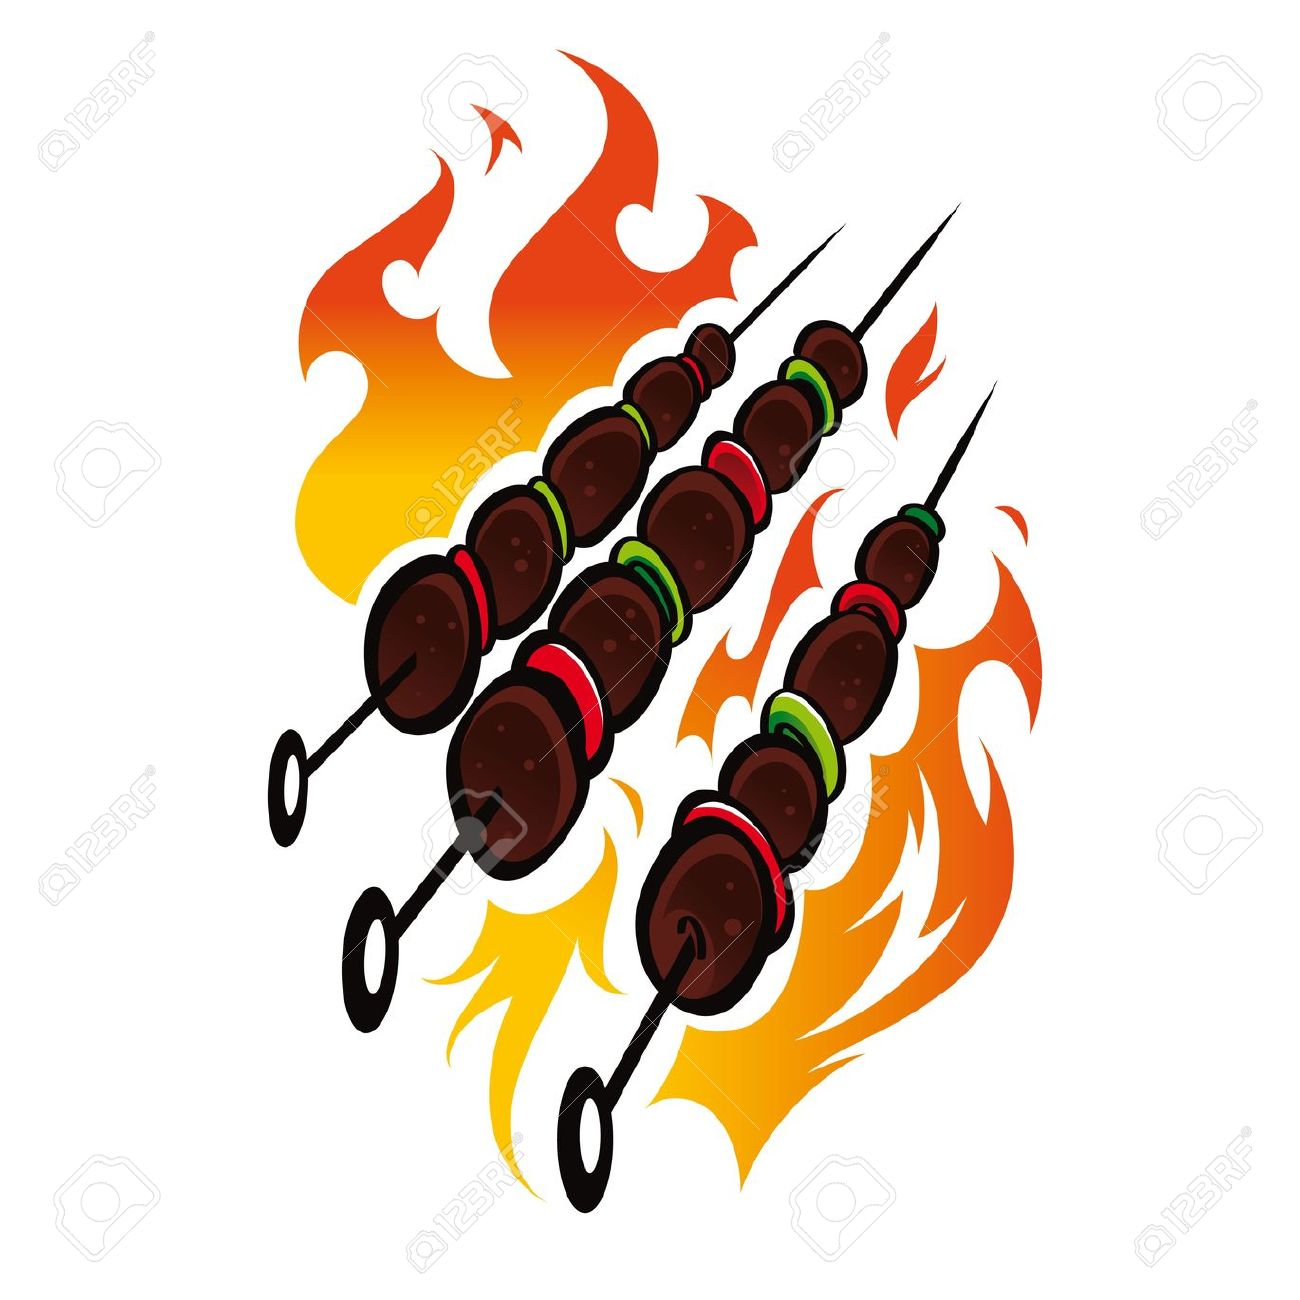 Bonfire clipart camping trip Clipart Skewers Flames The woman